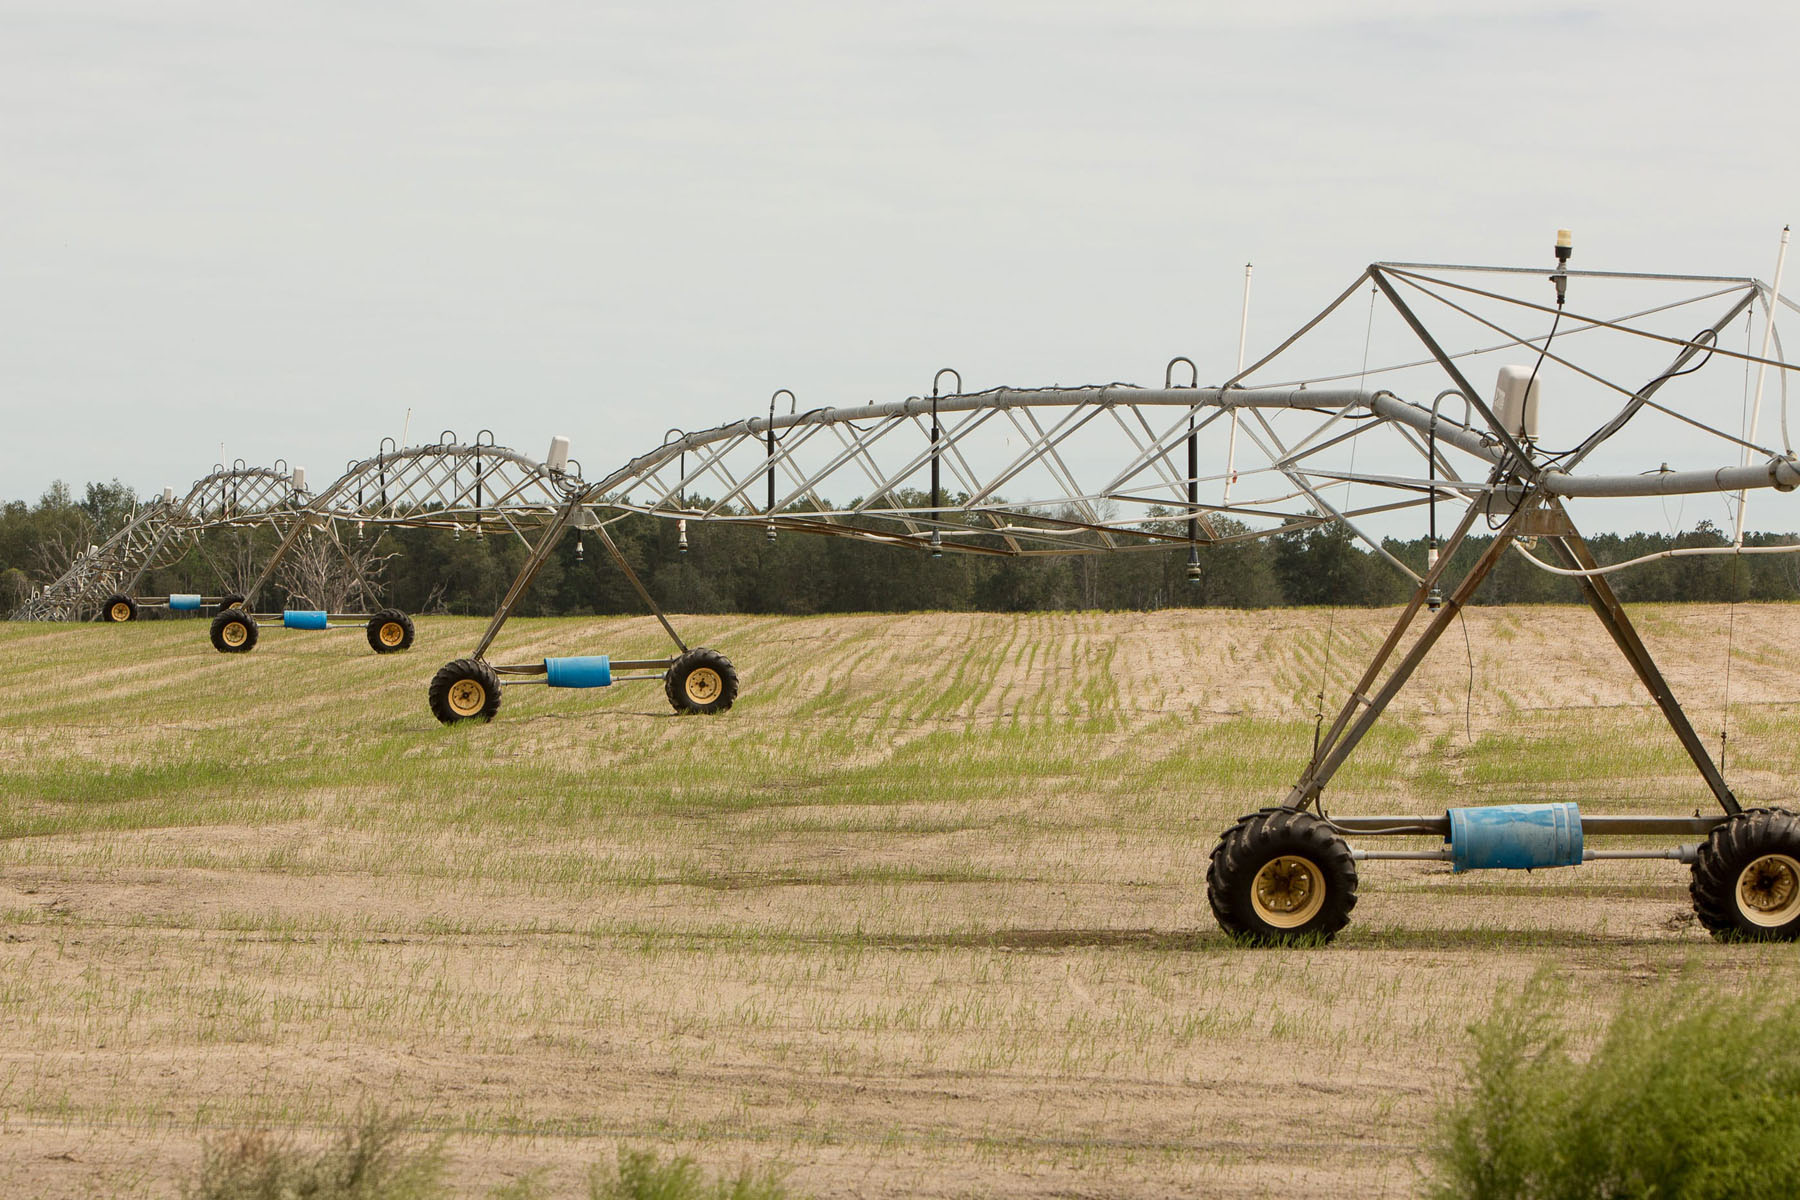 Farm Land for sale in North FL. Center pivot irrigation.